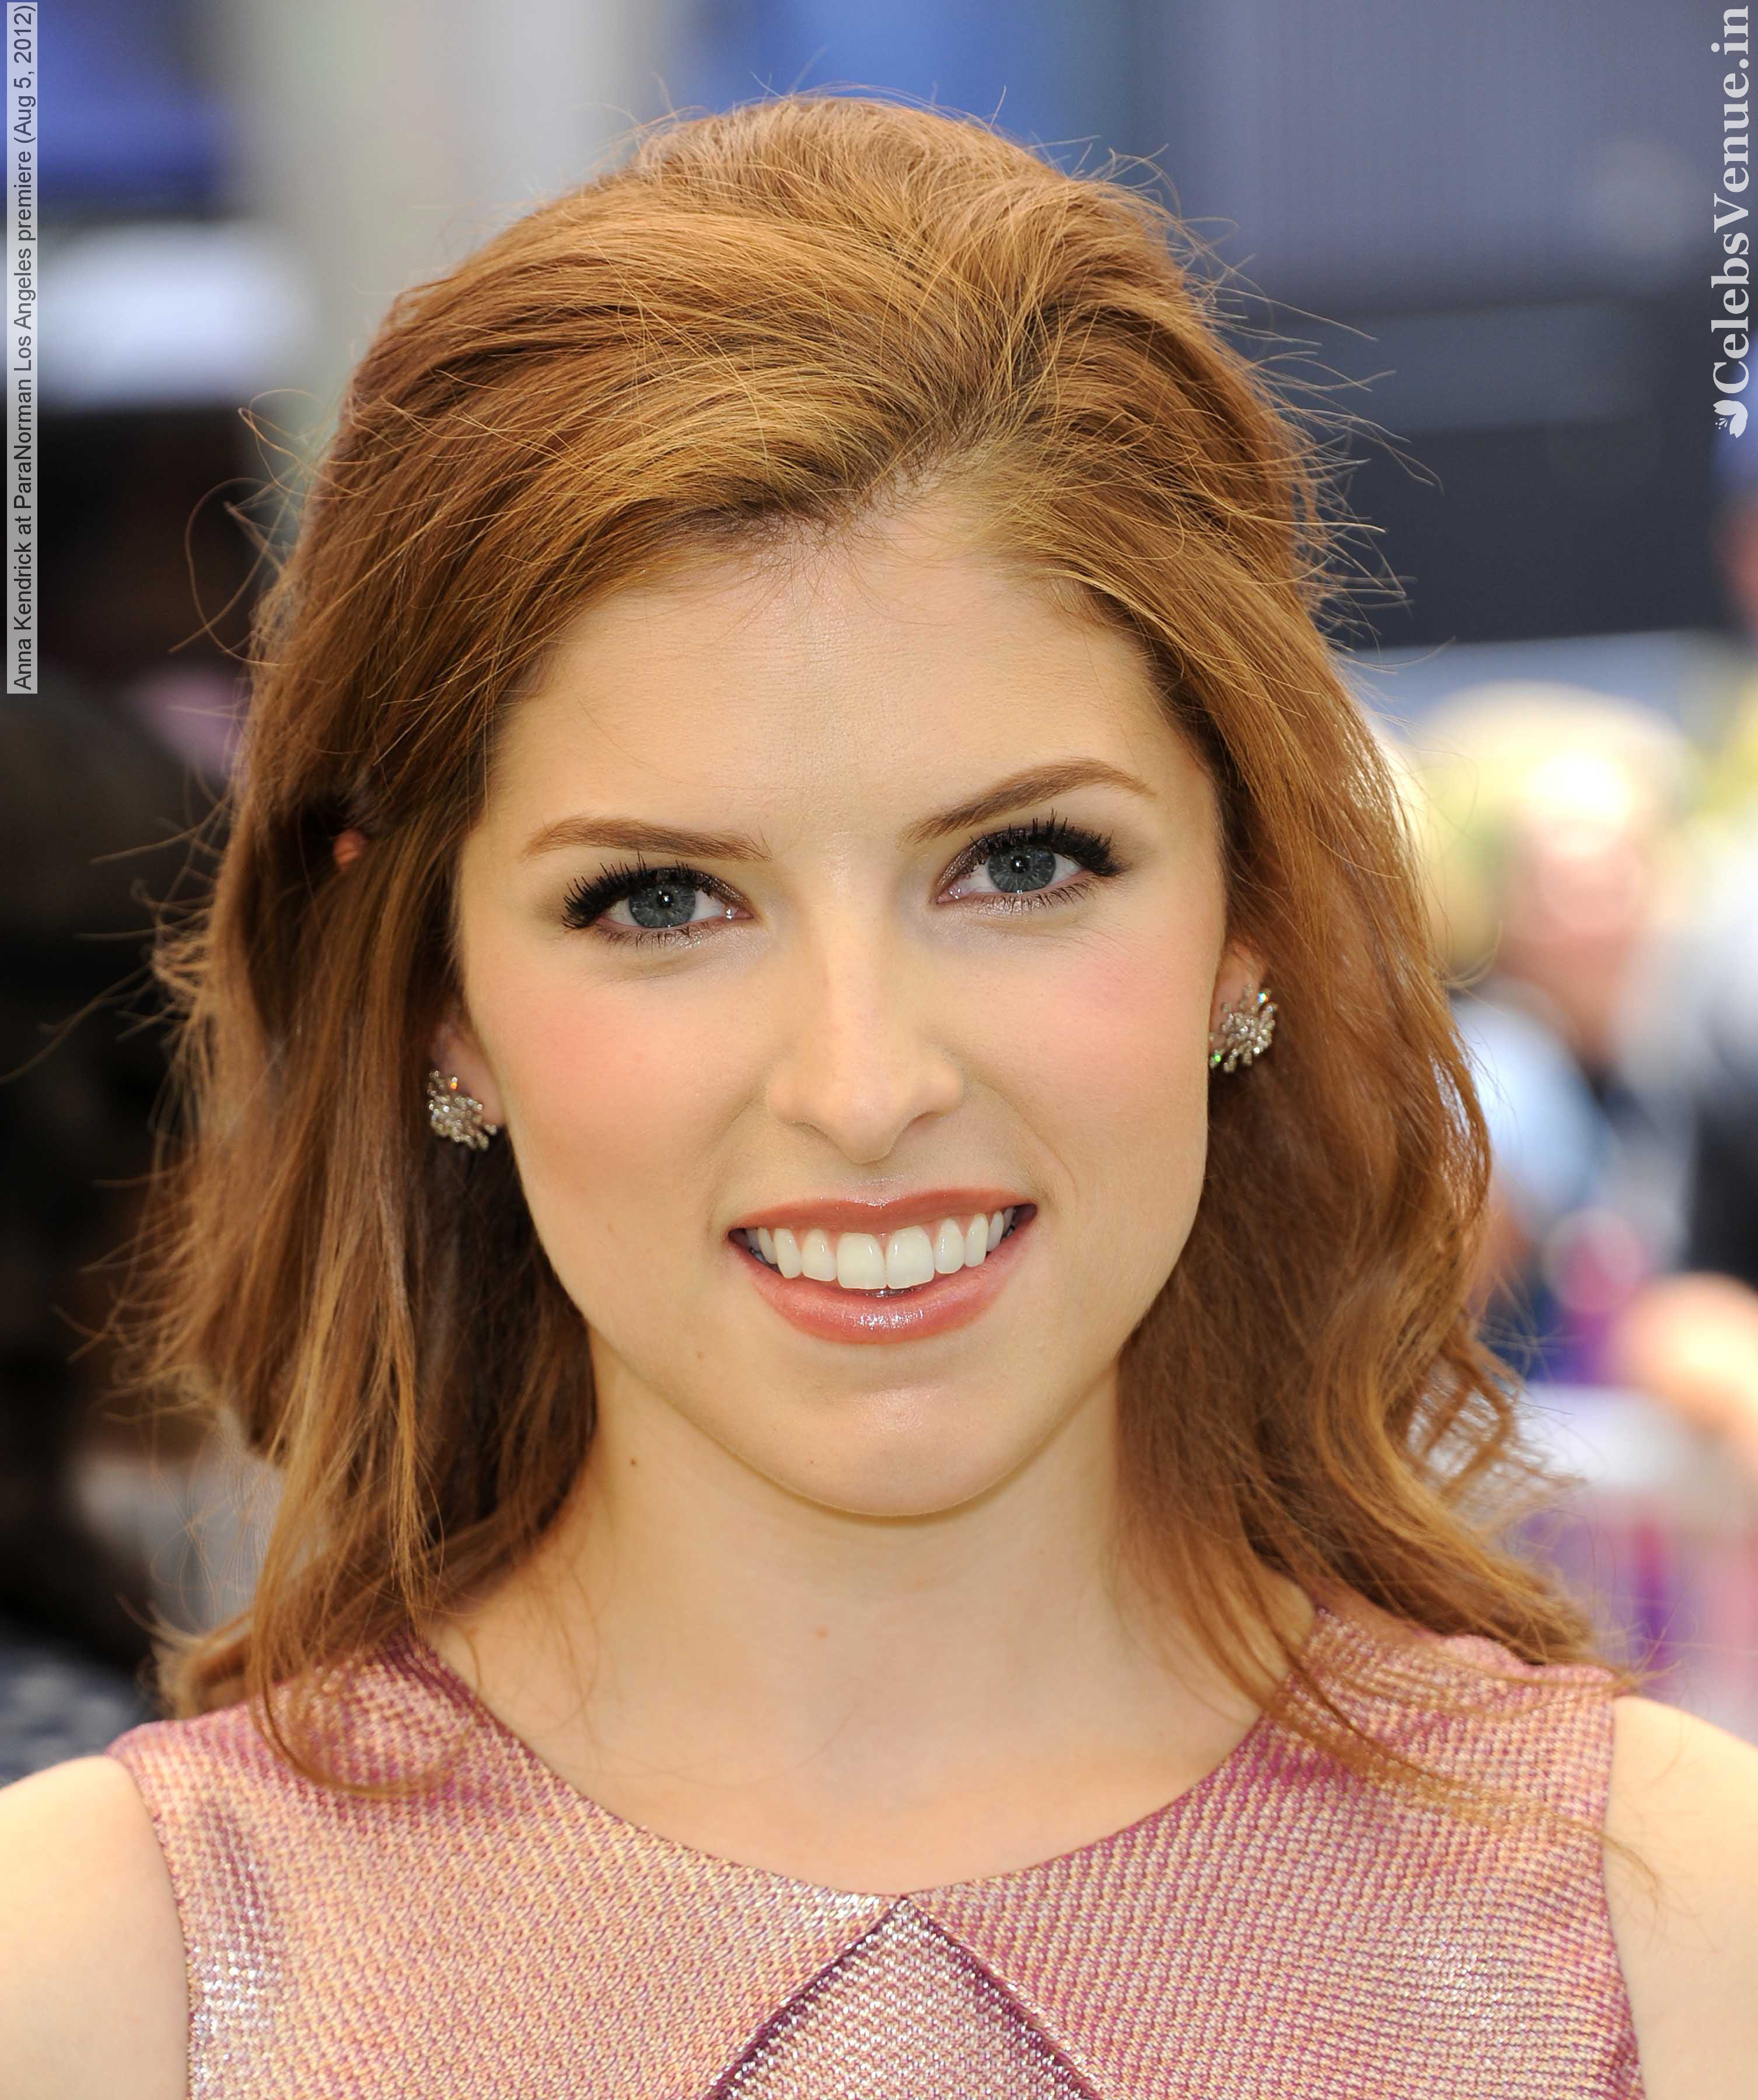 Anna Kendrick Wallpaper For Iphone